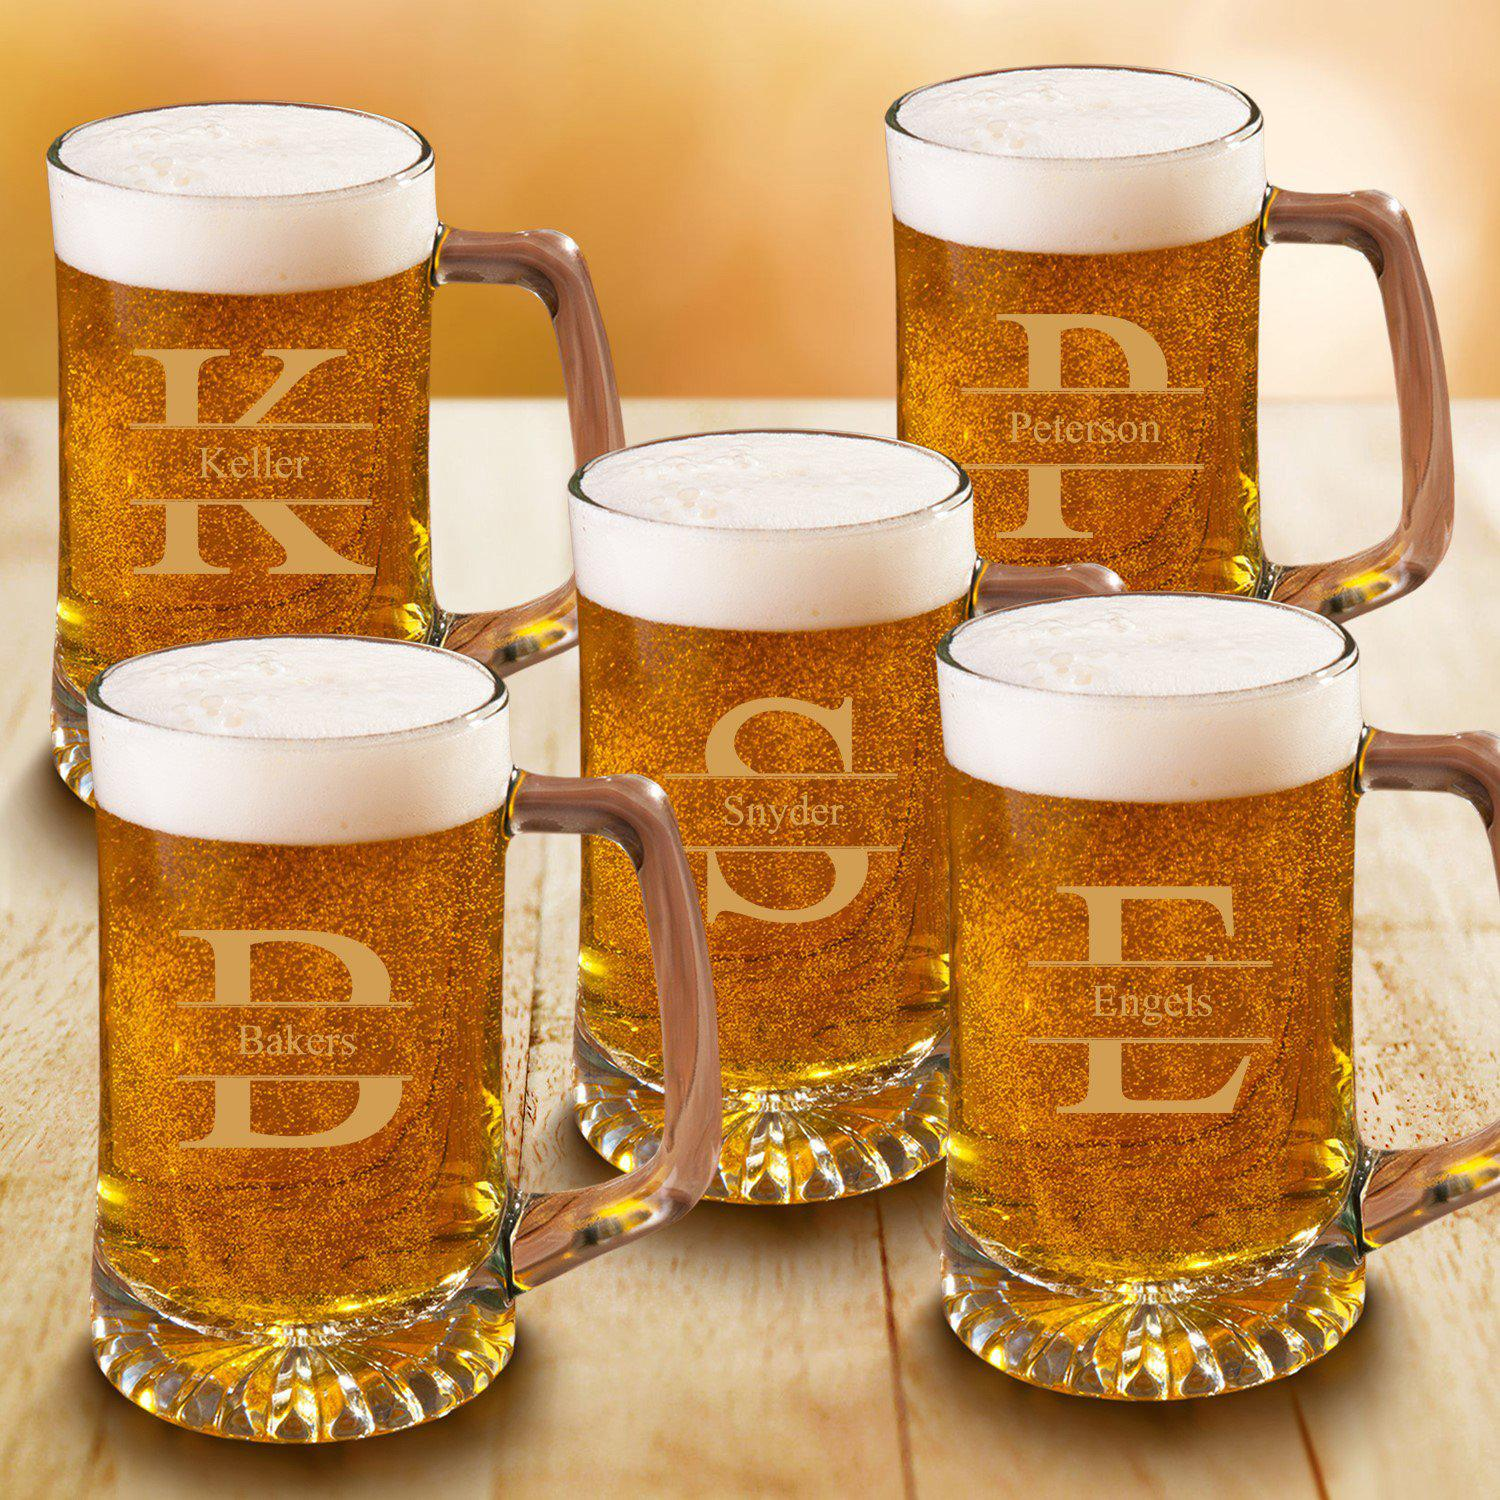 Personalized Beer Stein Set of 5 - 25 oz. Sports Mugs for Groomsmen